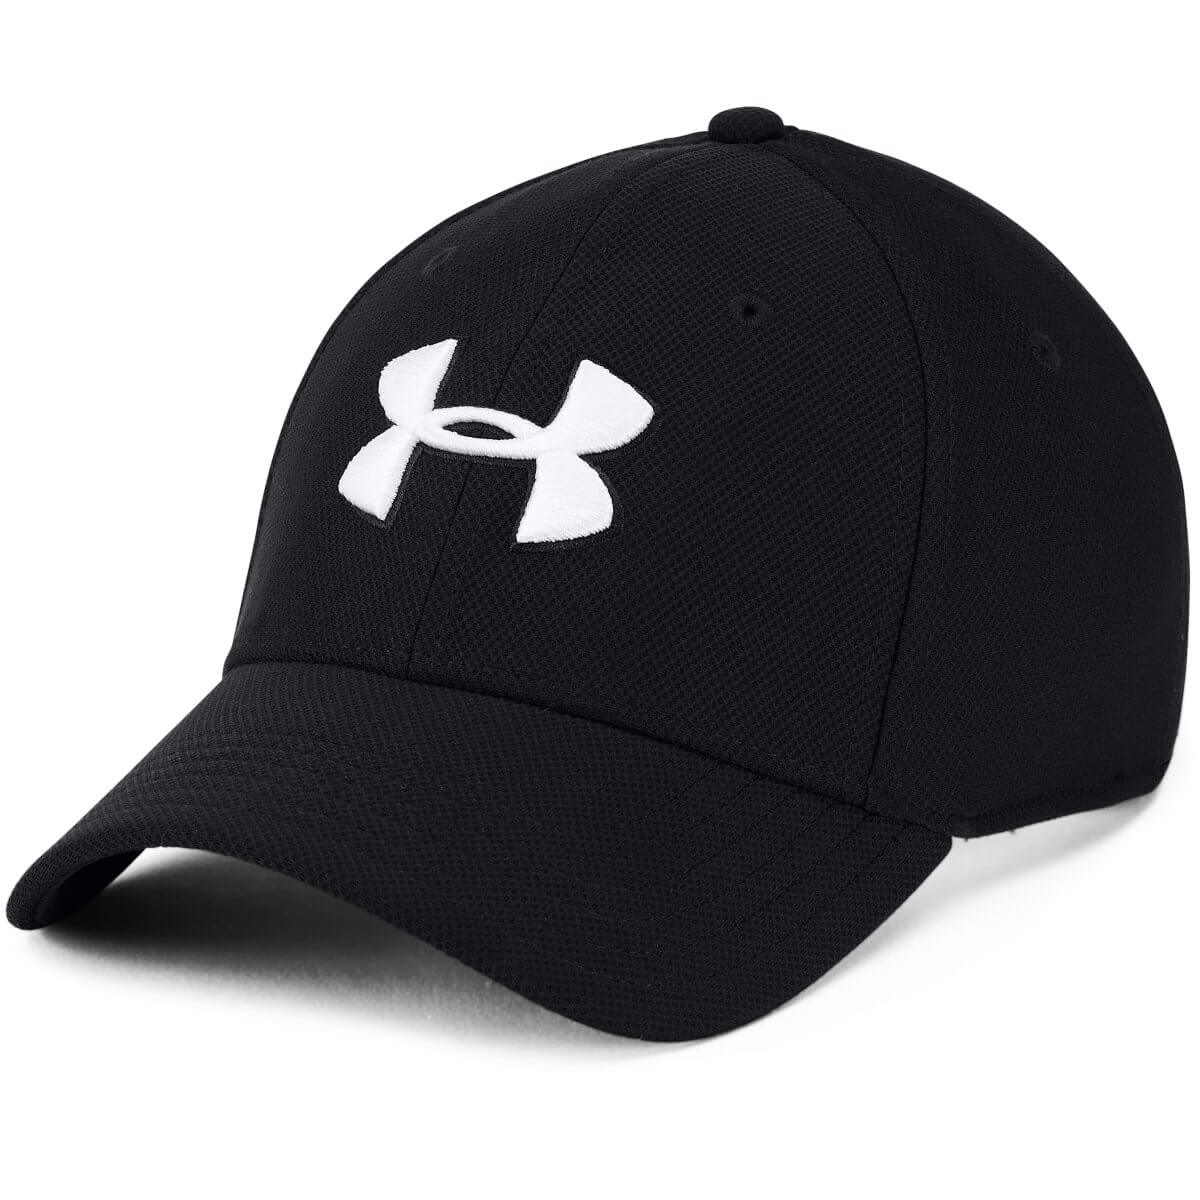 Kšiltovka Mens Blitzing 3.0 Cap BlackWhite - Under Armour